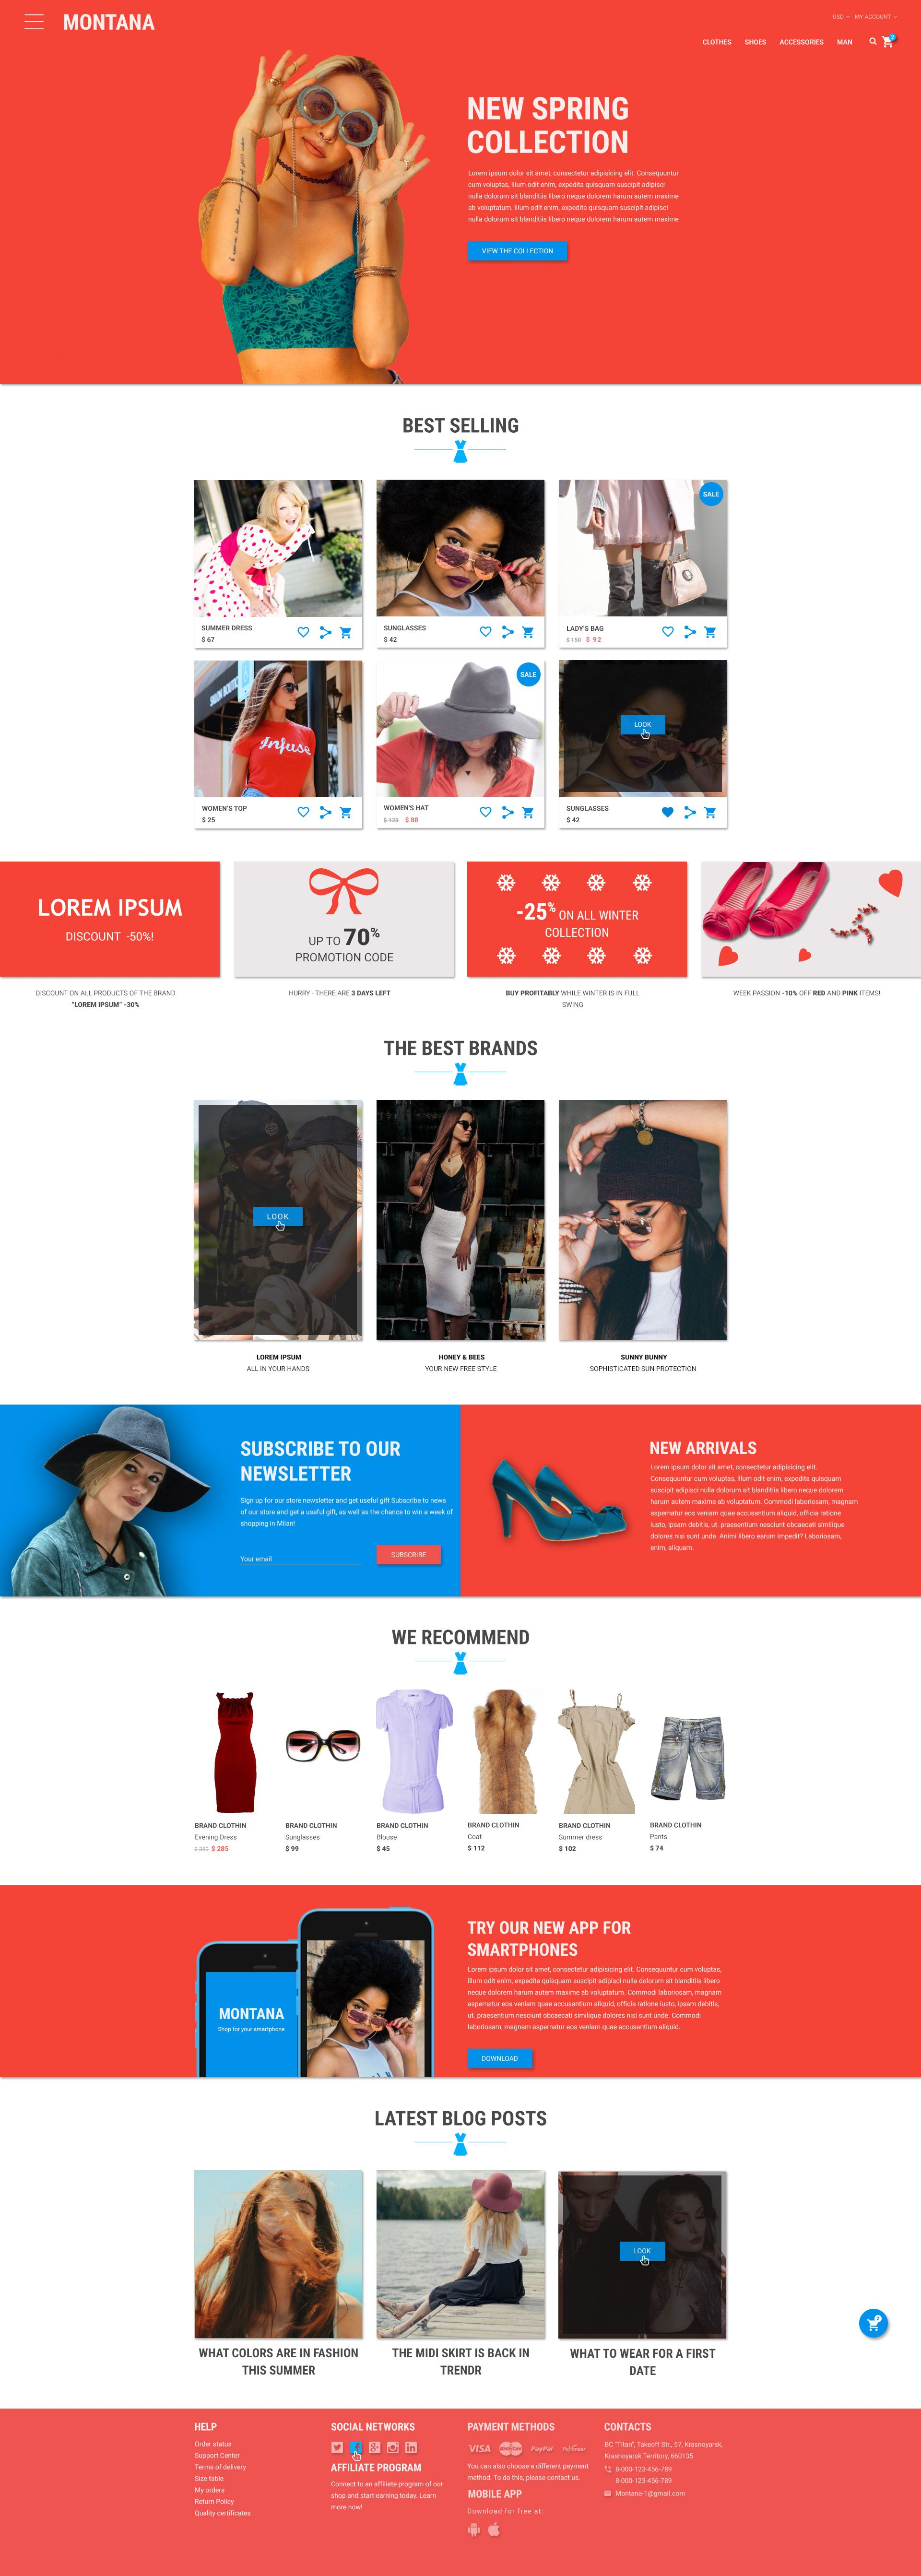 Montana Bright And Modern Online Store Web Design Tips Ecommerce Web Design Web Design Help